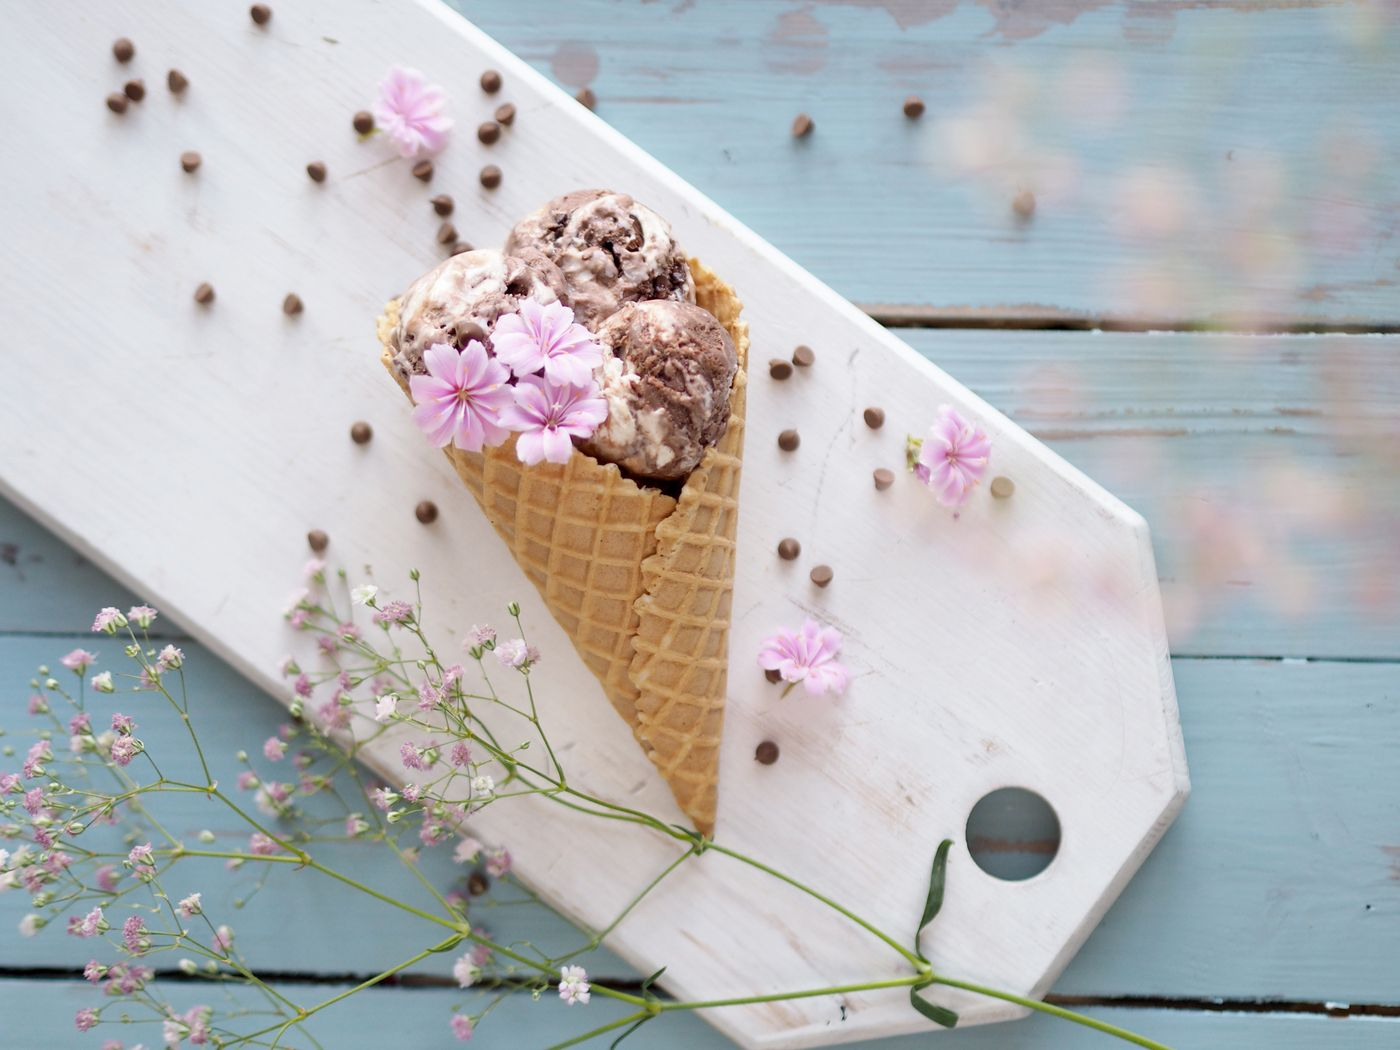 Ice cream cone and blossoms / Pupulandia // Pro tips for taking food photos